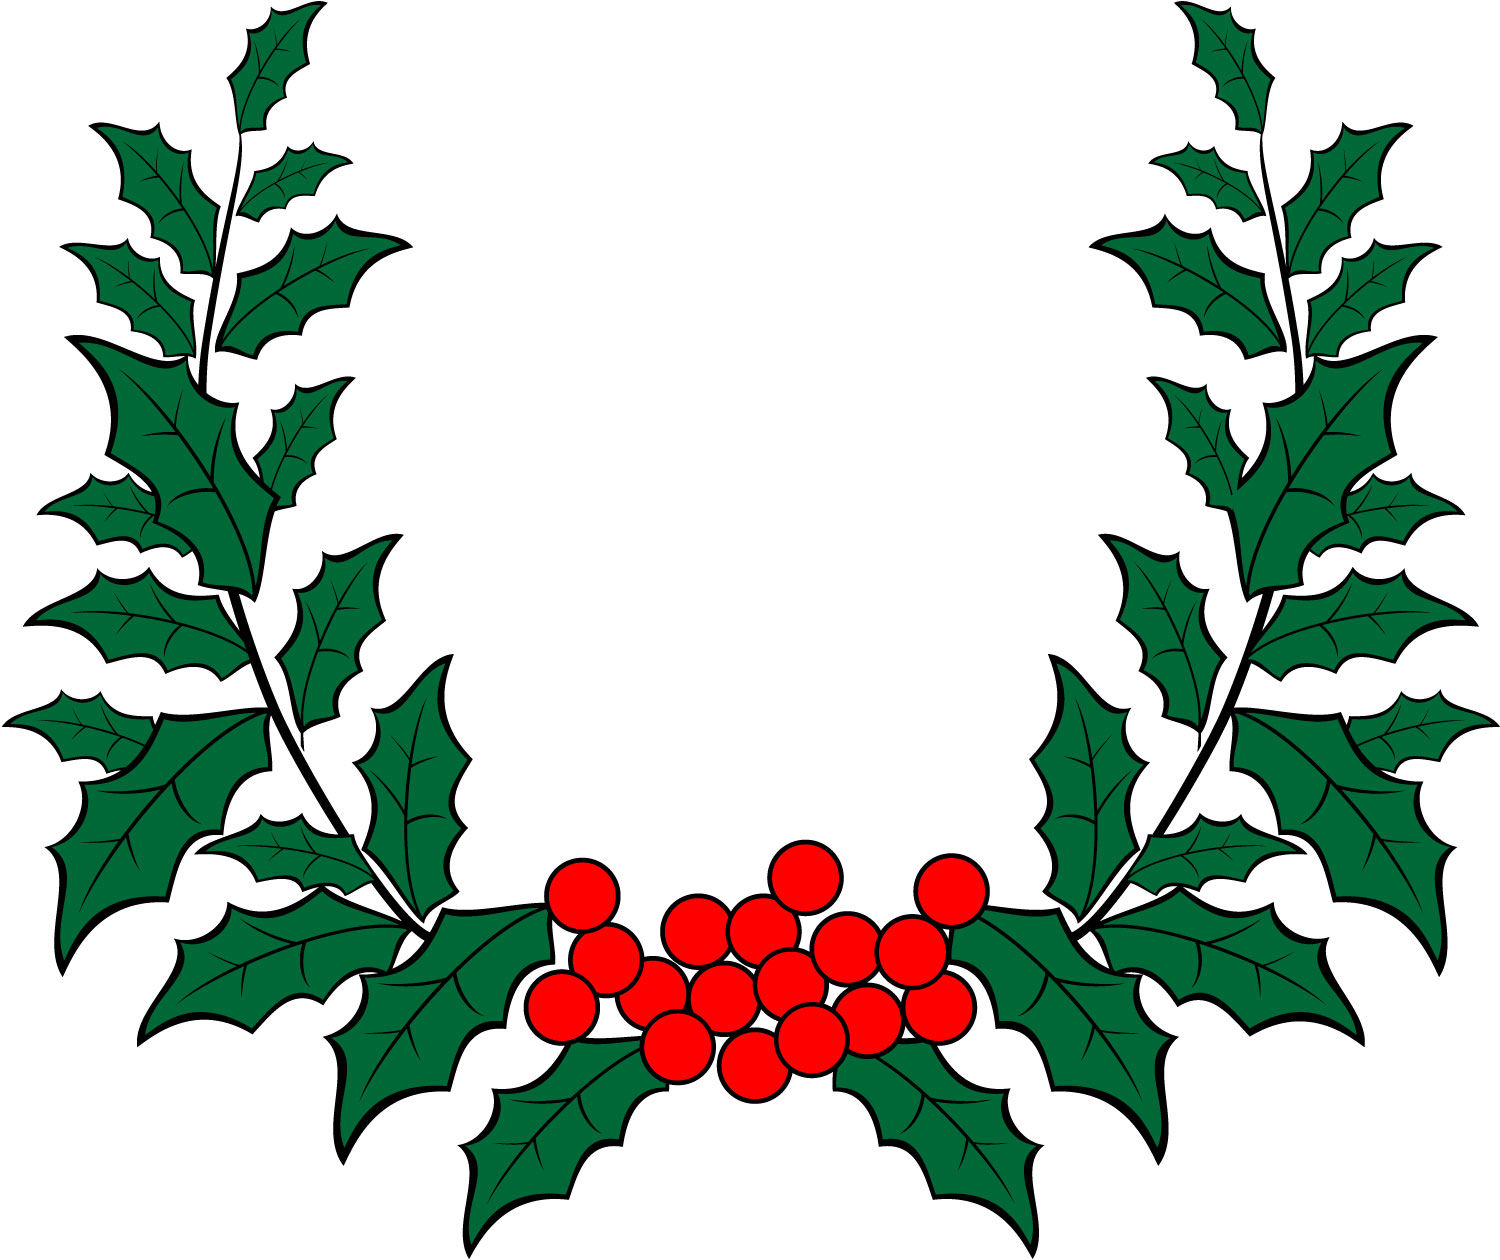 jpg freeuse download Holly wreath clipart. Free wreaths download clip